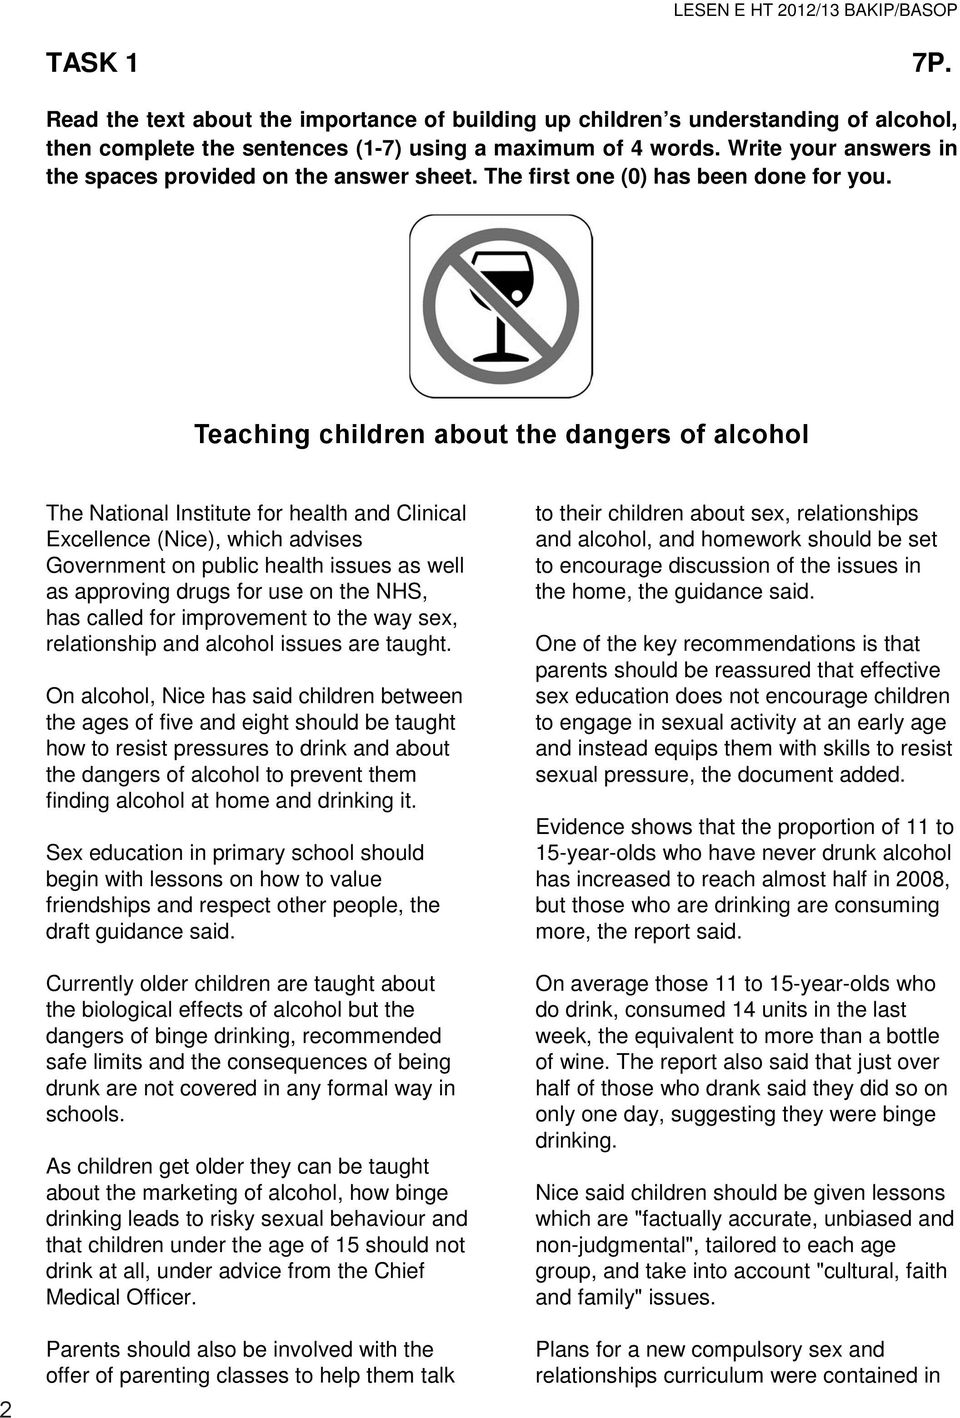 Teching children bout the dngers of lcohol 2 The Ntionl Institute for helth nd Clinicl Excellence (Nice), which dvises Government on public helth issues s well s pproving drugs for use on the NHS, hs